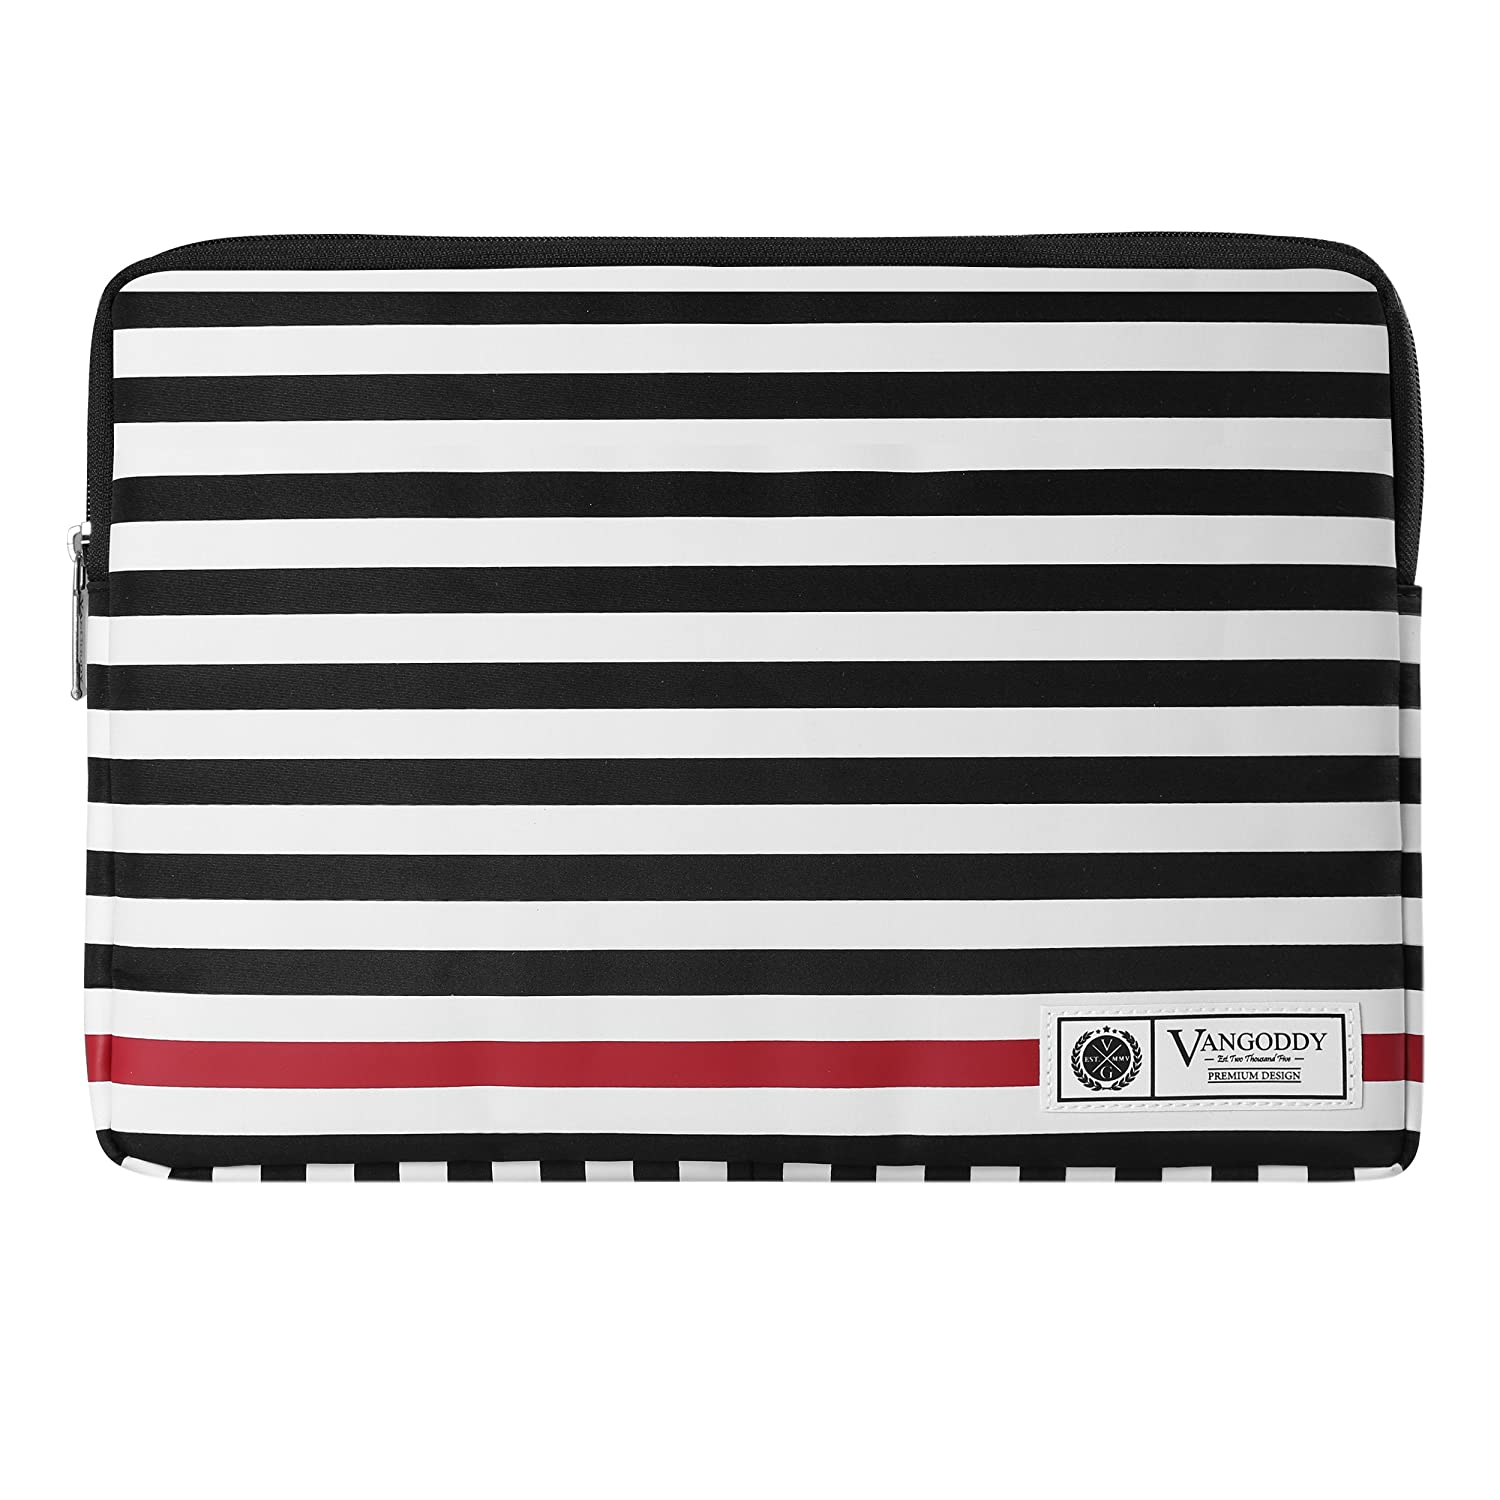 ThinkPad Yoga Series 11.6 12 12.2 12.5 13.3 inch Tablet Laptop with Micro USB Cable Vangoddy Luxe R Series Black White Stripe Lightweight Padded Zipper Carrying Sleeve for Lenovo IdeaPad